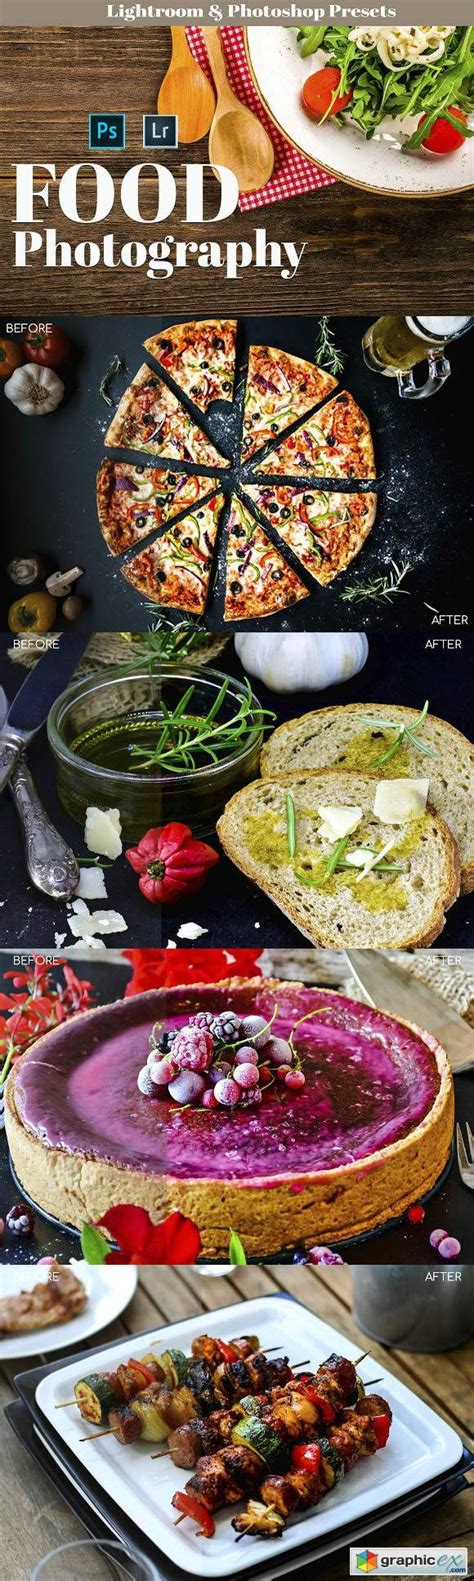 food photography presets   vector stock